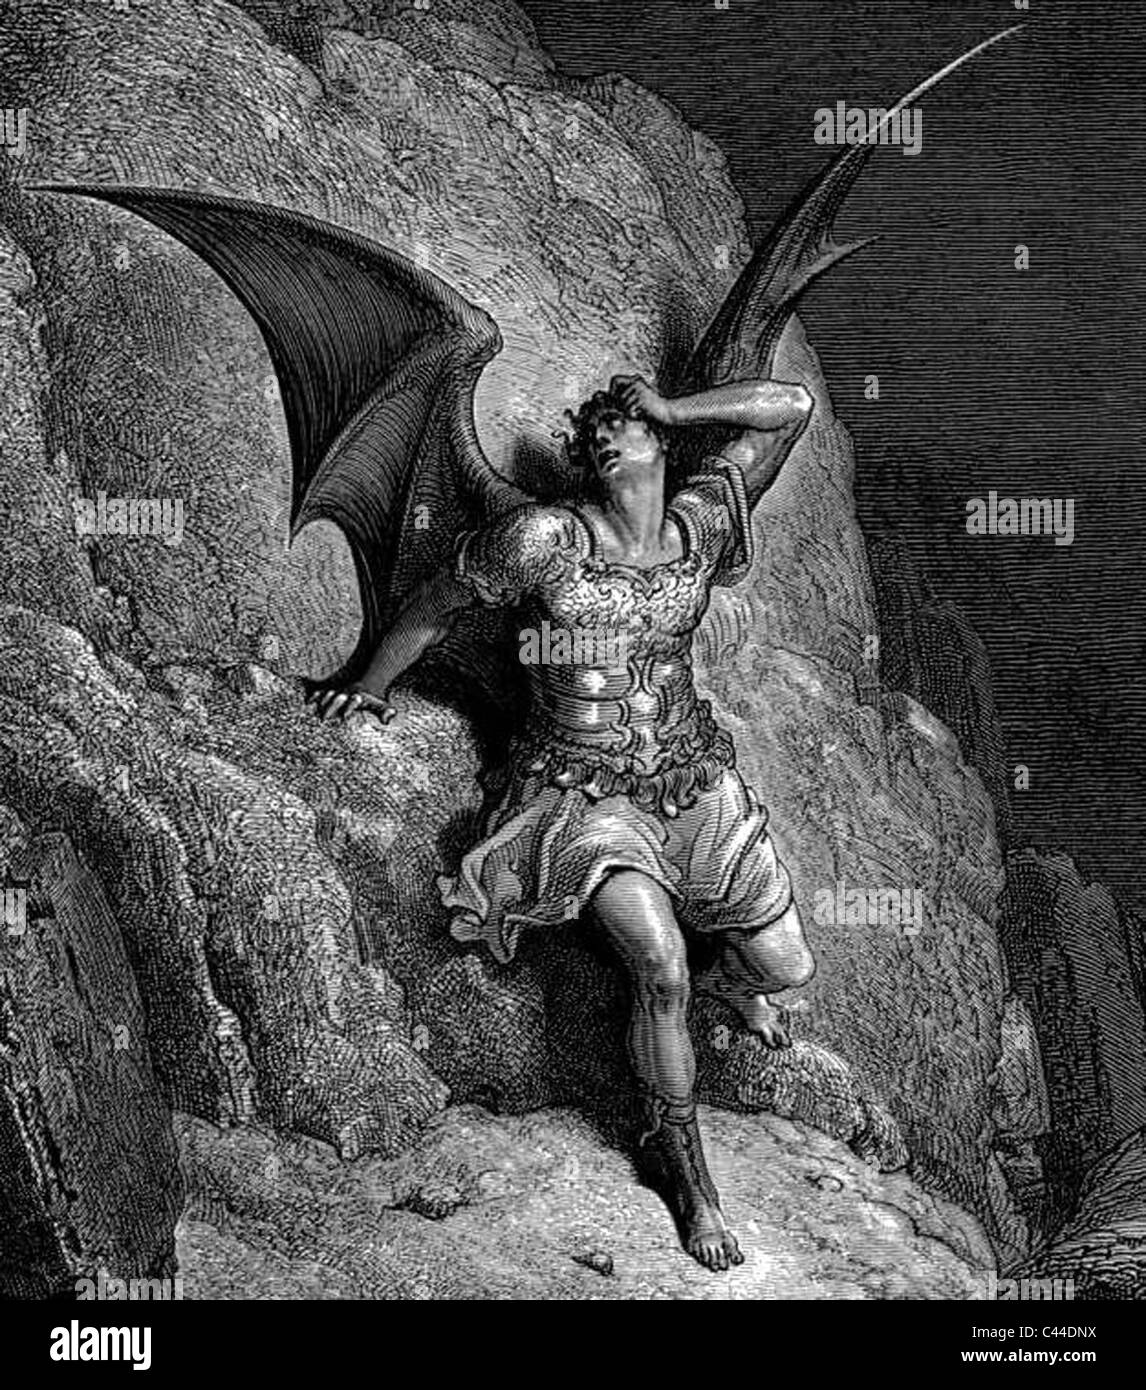 SATAN as drawn by Gustave Dore for the 1866 edition of  Milton's Paradise Lost - Stock Image